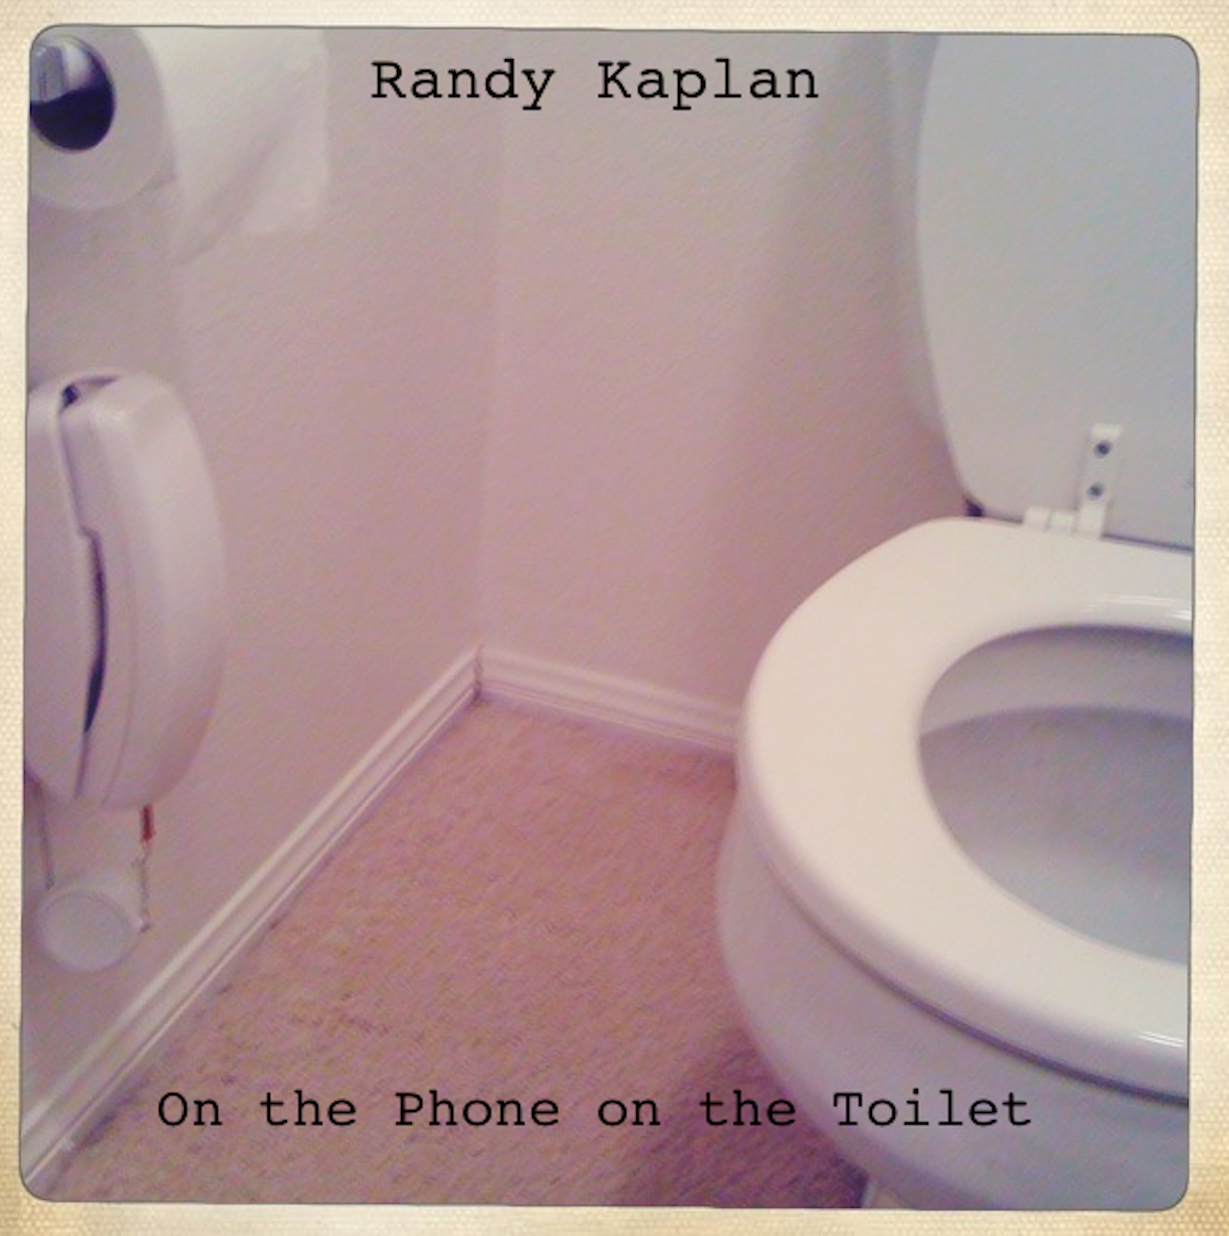 Randy nailing on the commode